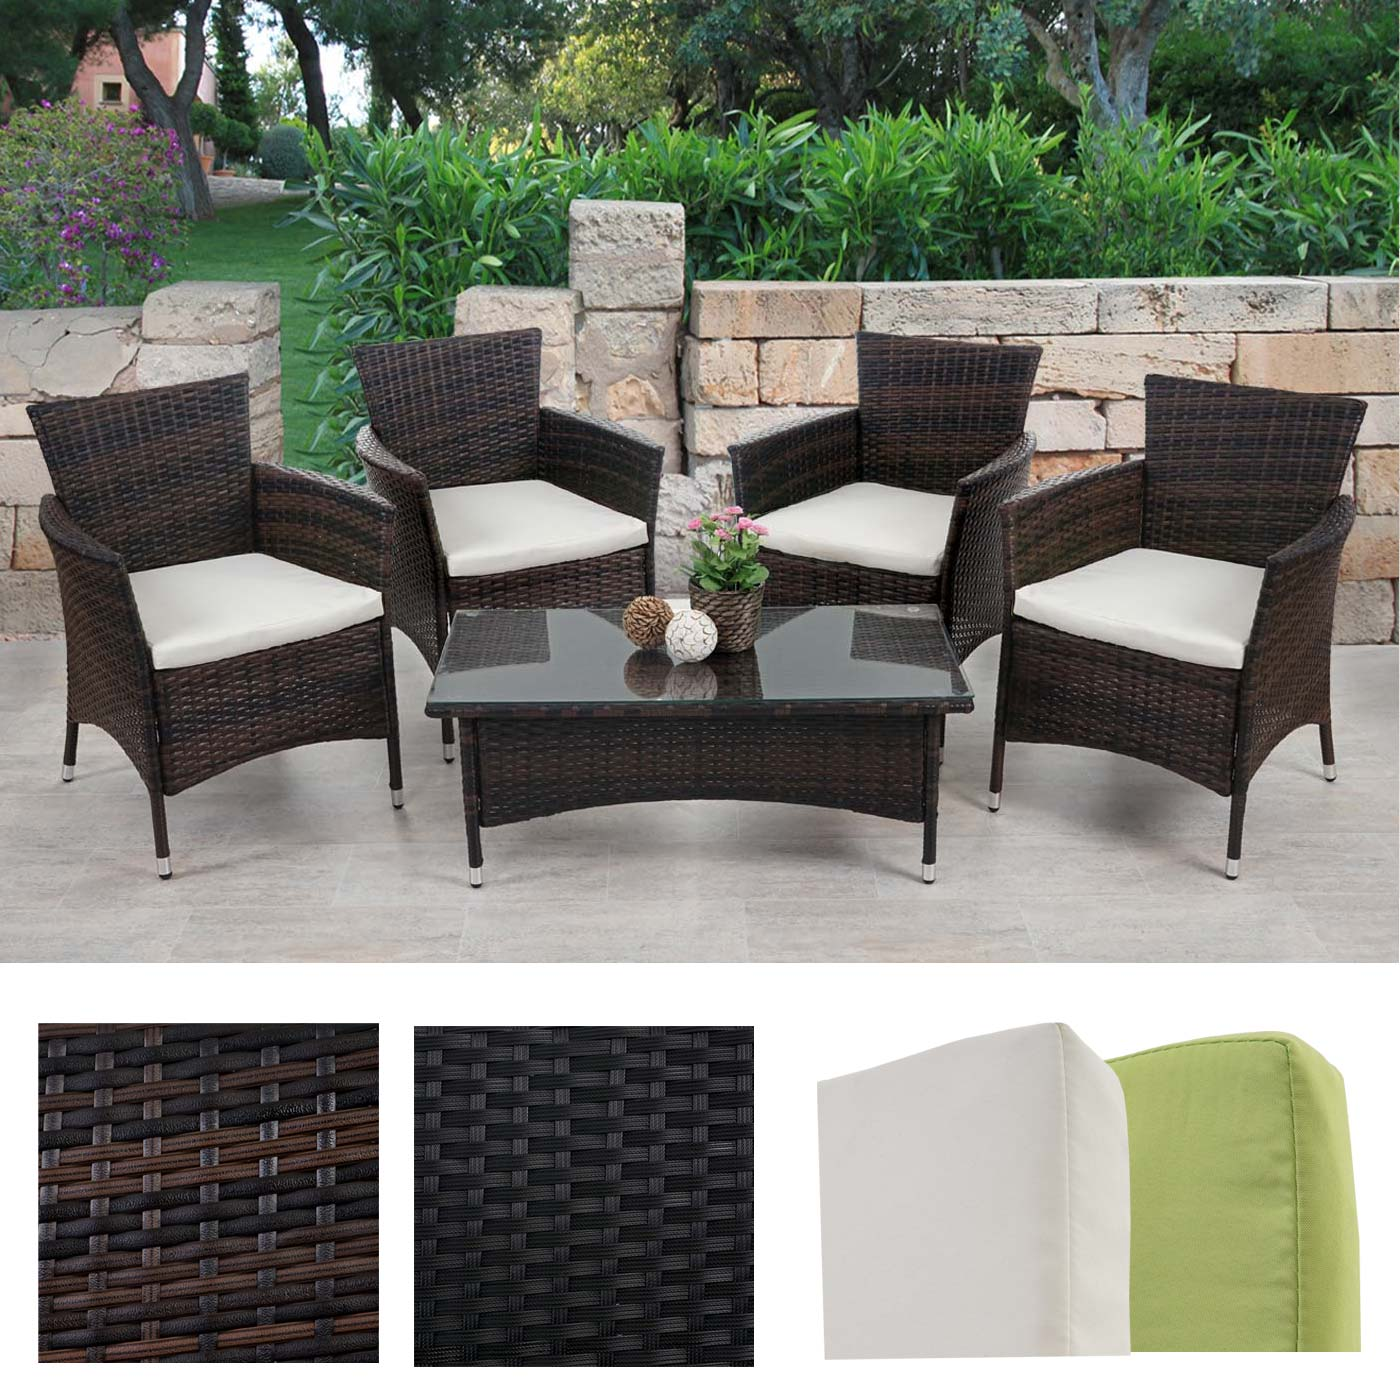 poly rattan garten garnitur rom basic sitzgruppe lounge set tisch 4x sessel. Black Bedroom Furniture Sets. Home Design Ideas